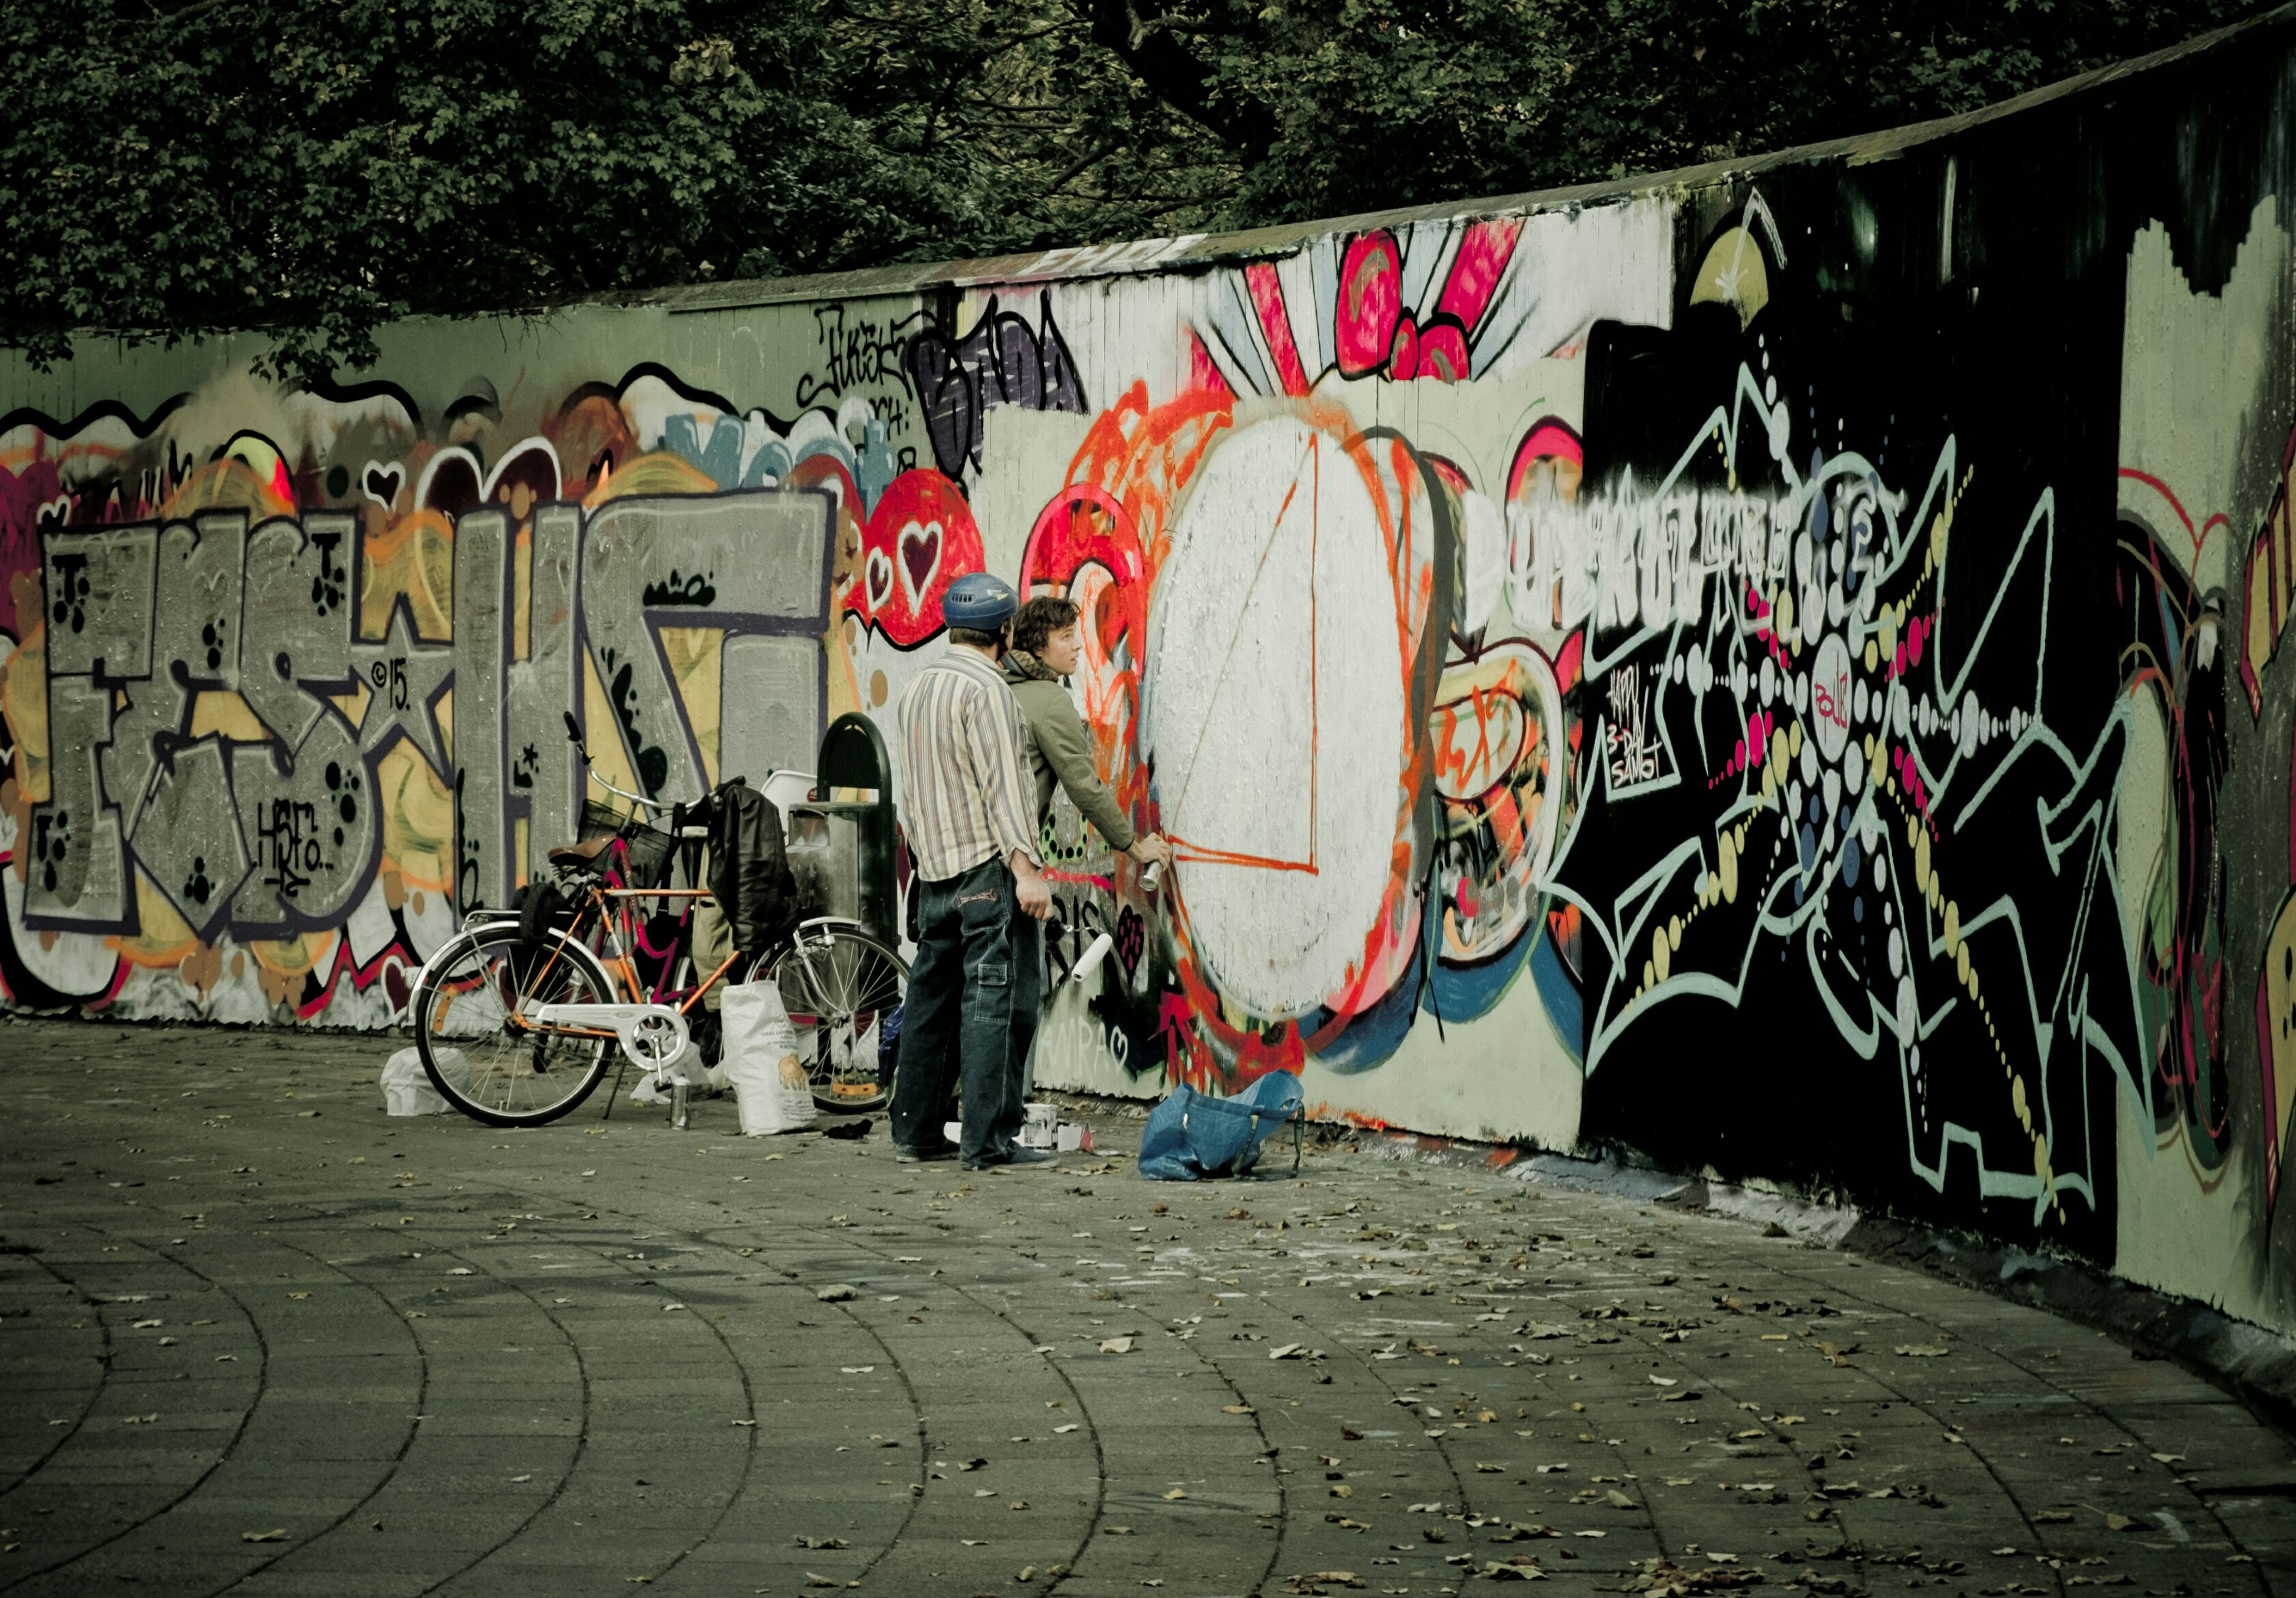 graffiti, bicycle, built structure, architecture, wall - building feature, building exterior, street, art, multi colored, art and craft, creativity, street art, cobblestone, transportation, outdoors, day, sidewalk, wall, footpath